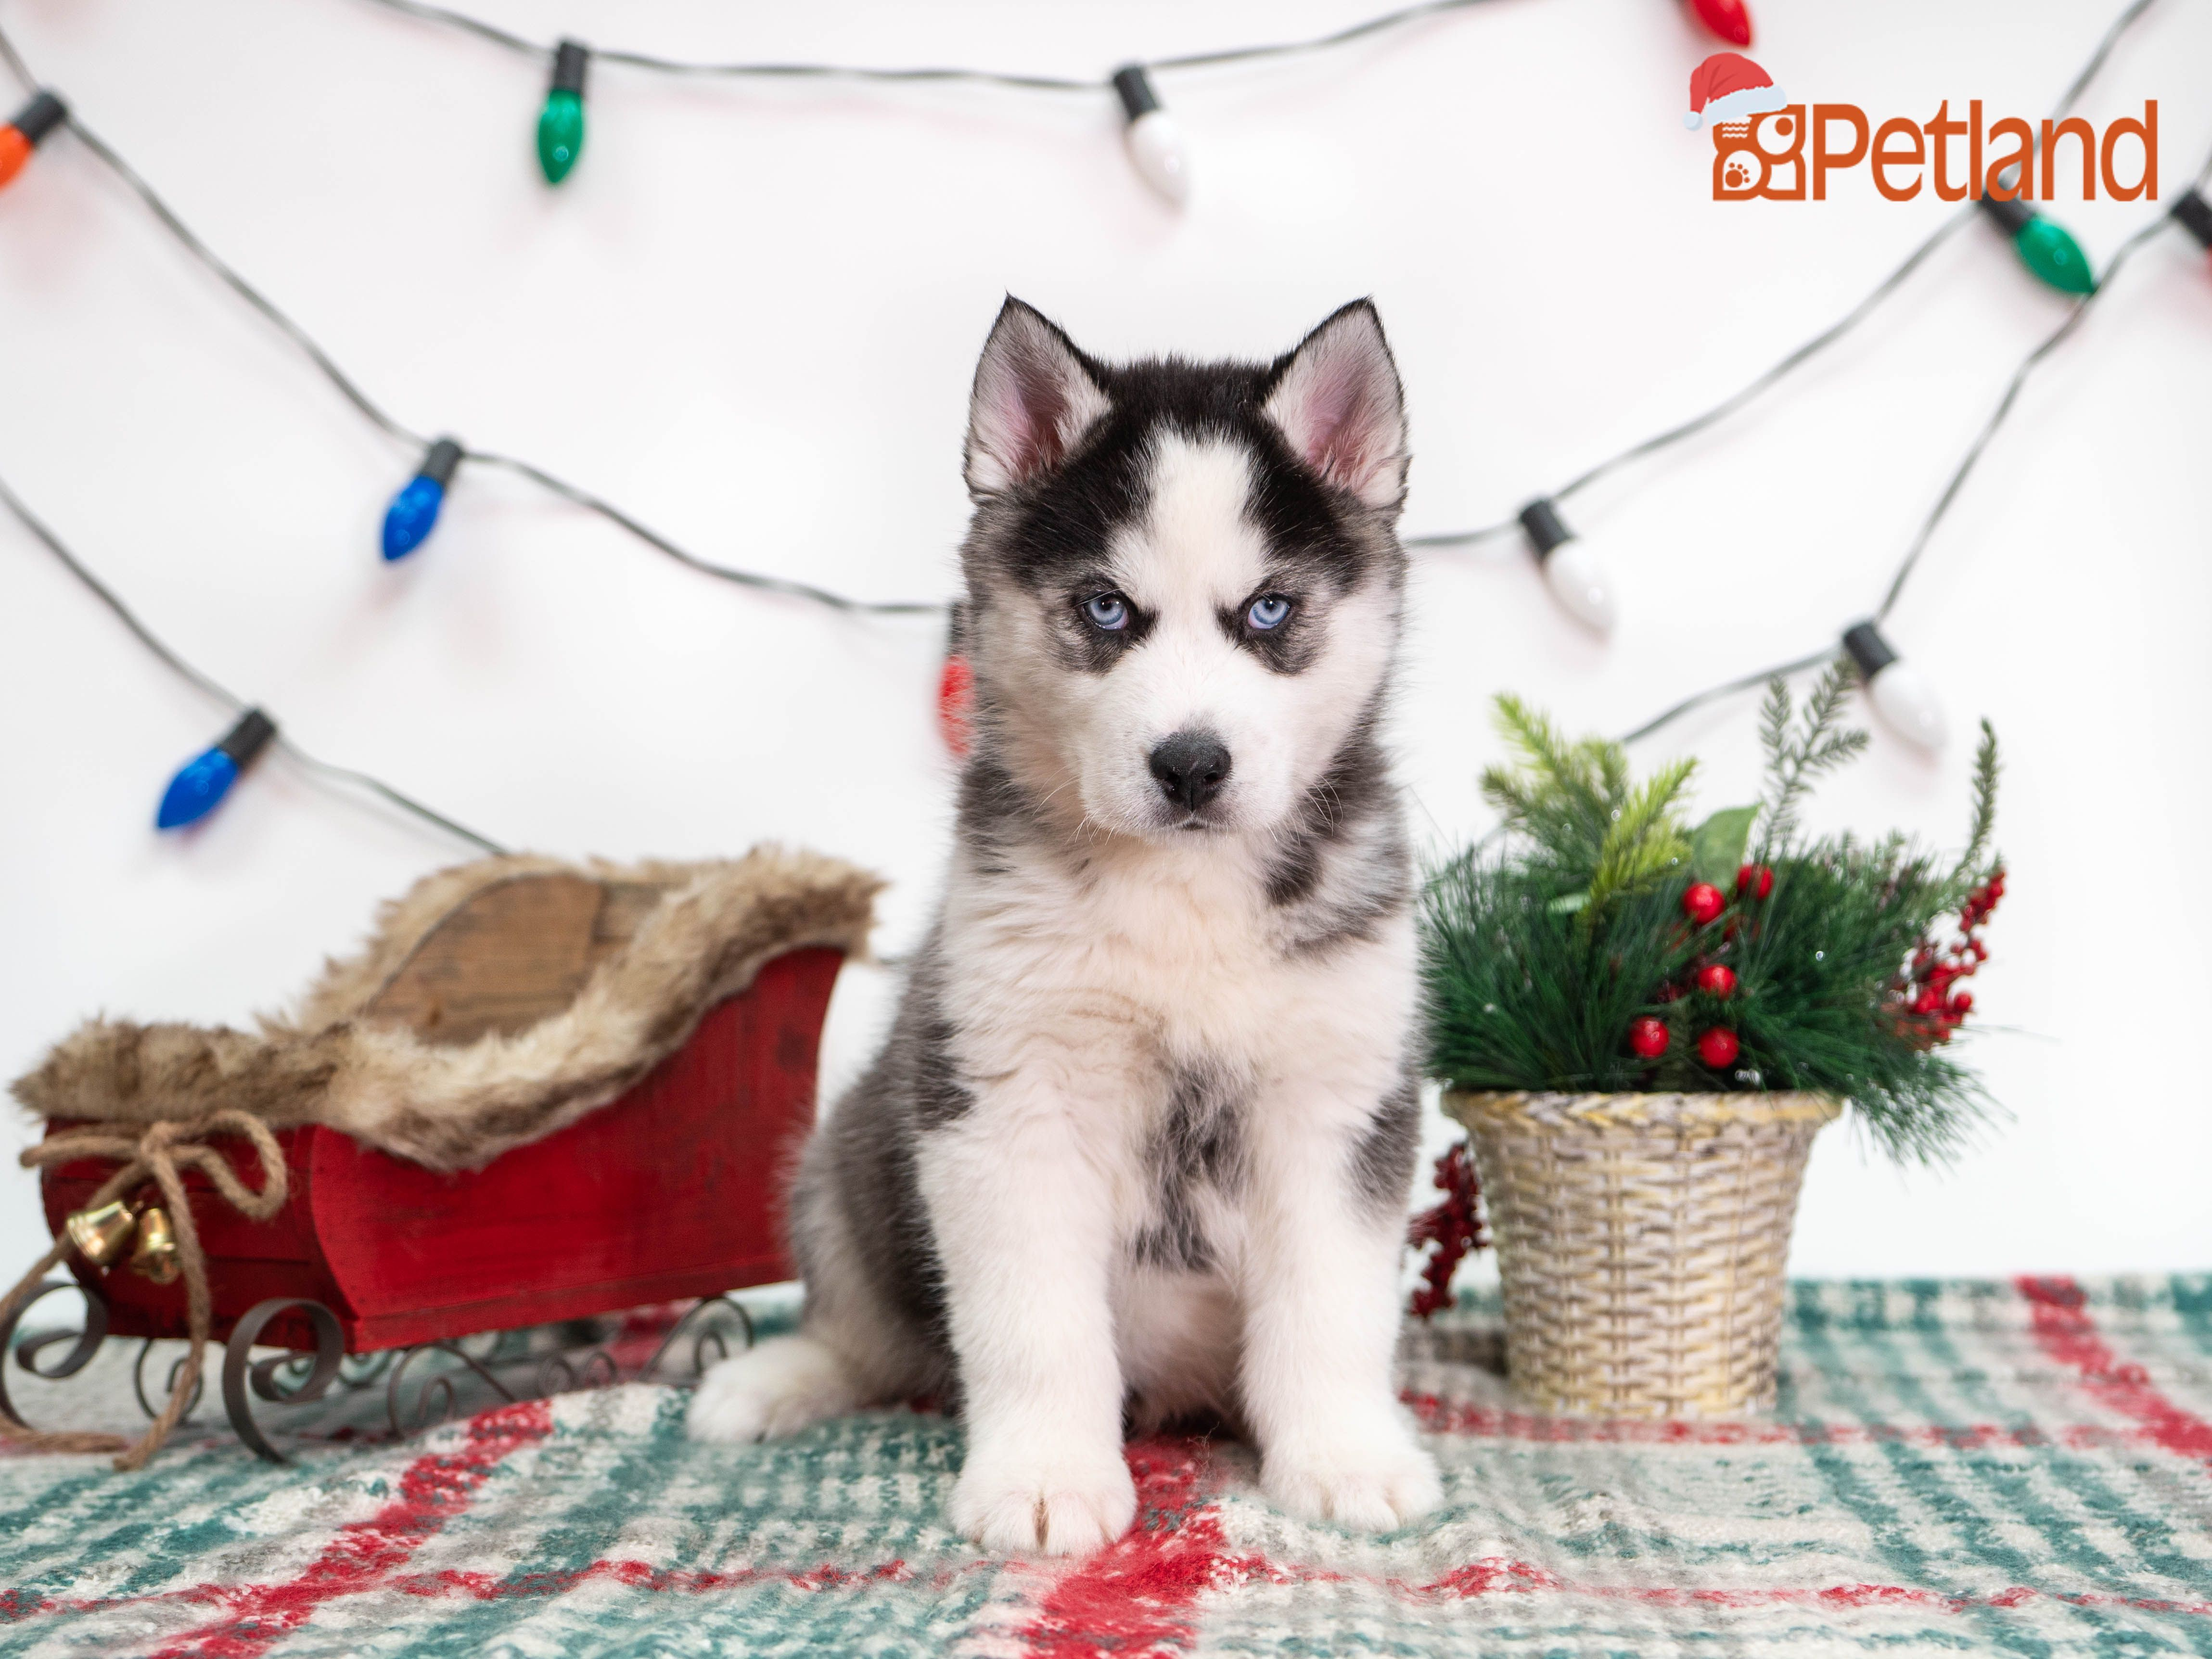 Puppies For Sale (With images) Puppy friends, Husky